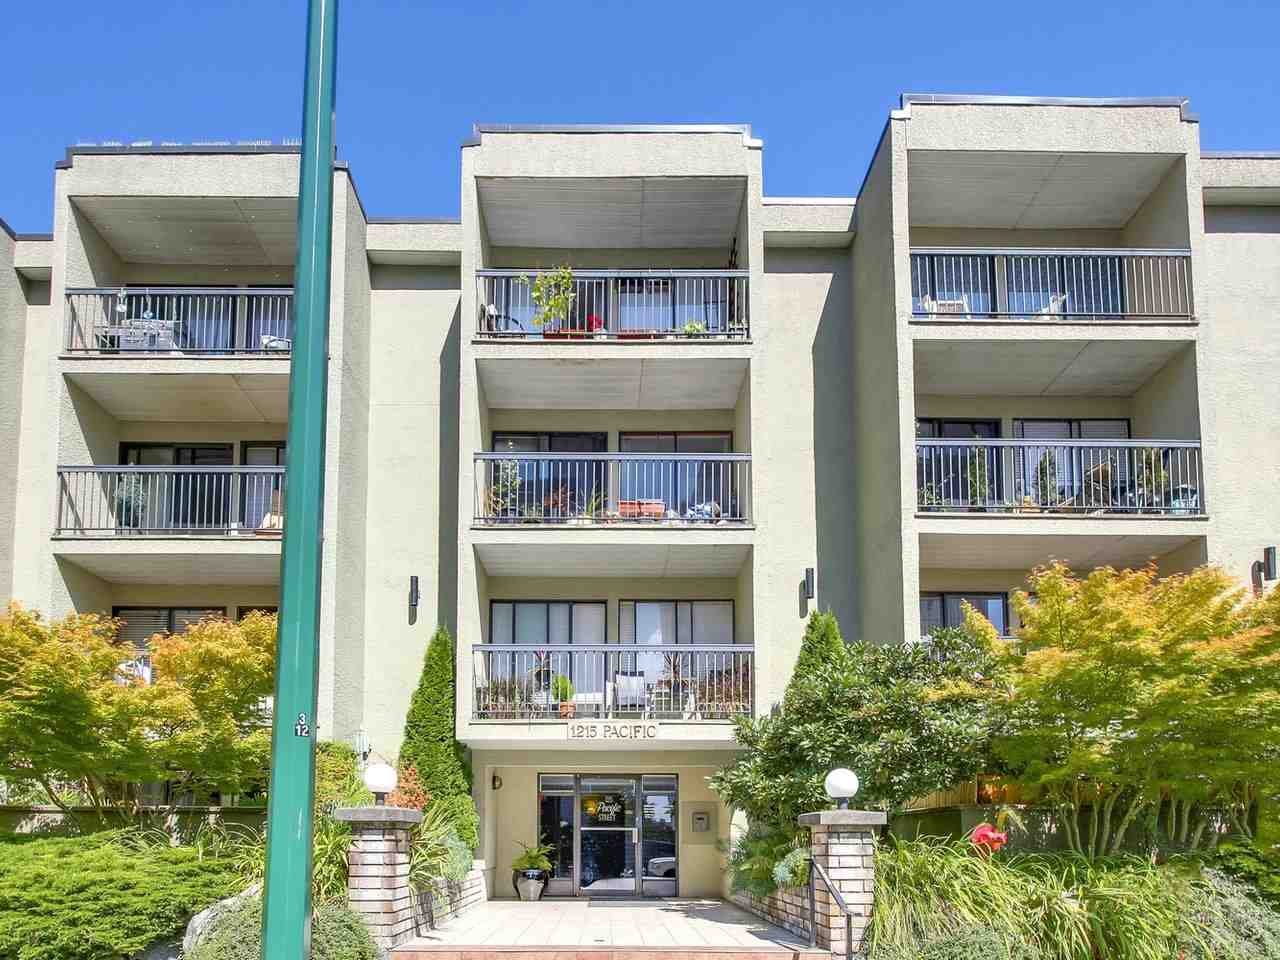 Condo Apartment at 210 1215 PACIFIC STREET, Unit 210, Vancouver West, British Columbia. Image 2